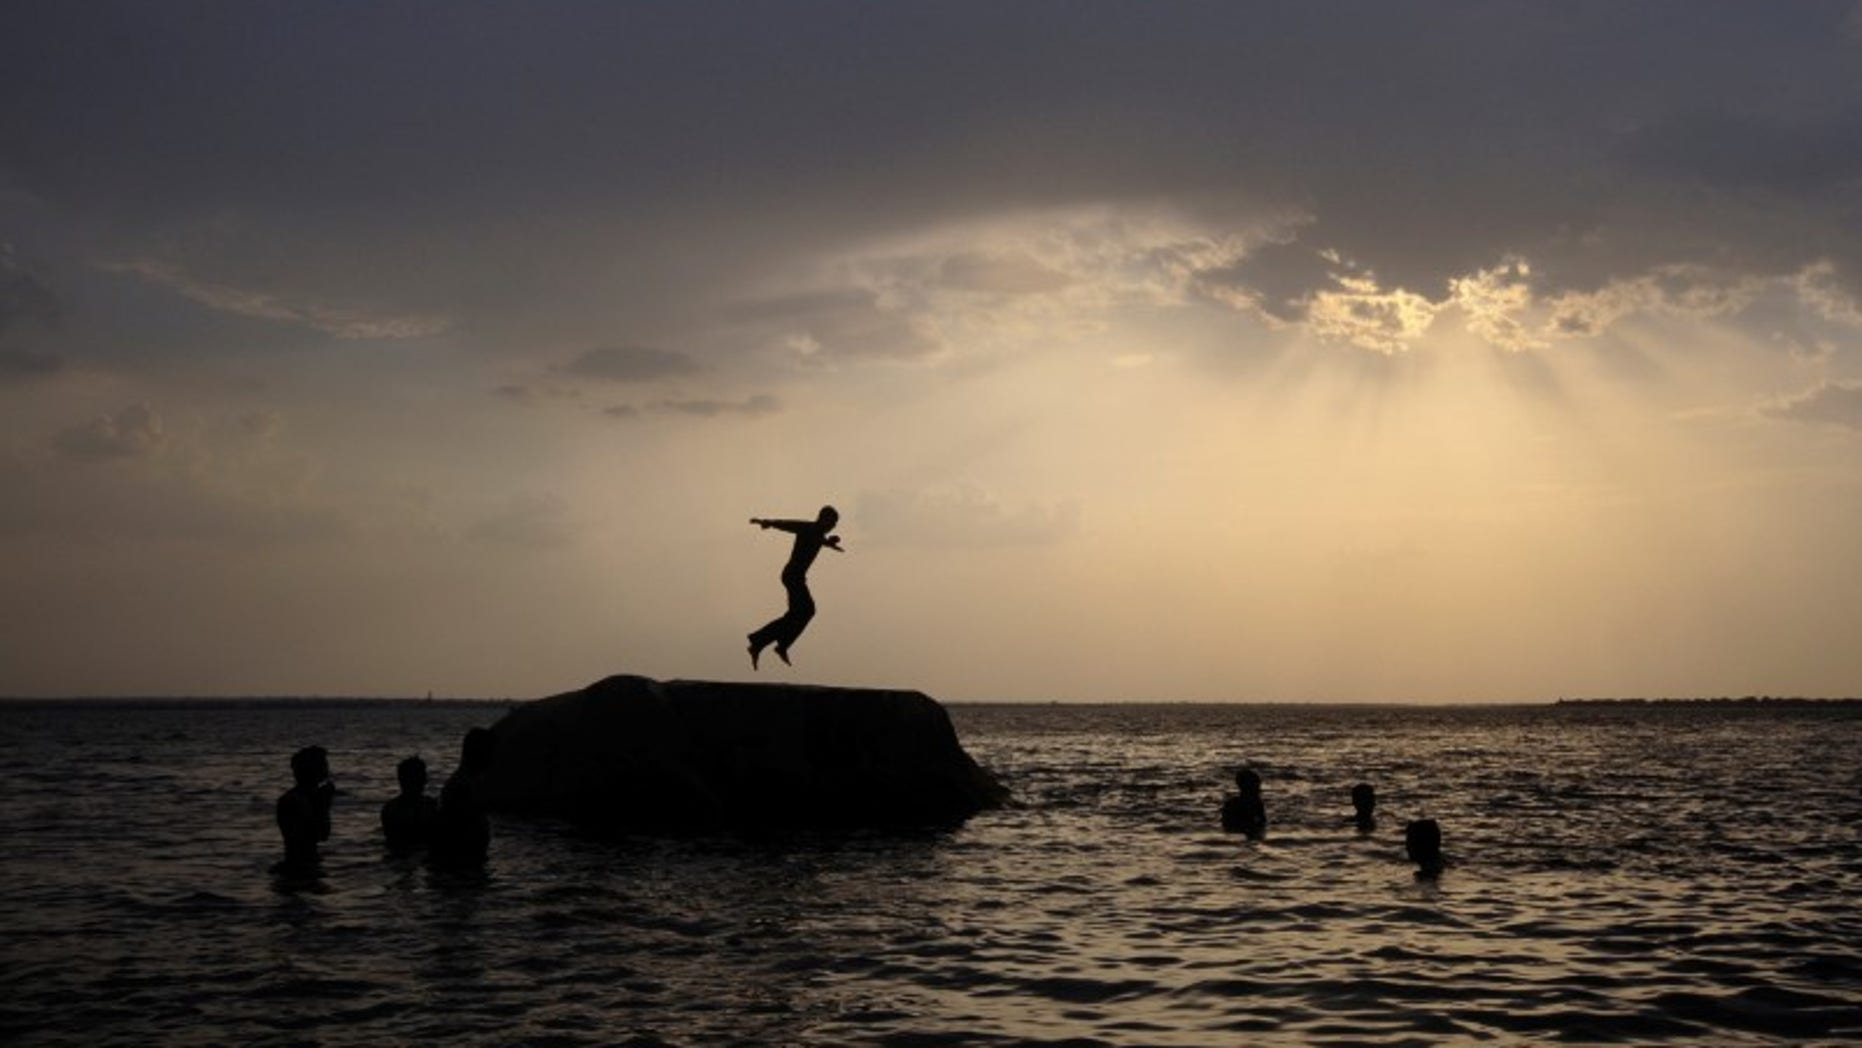 A boy prepares to jump off a rock into the waters of the Osman Sagar Lake near Hyderabad